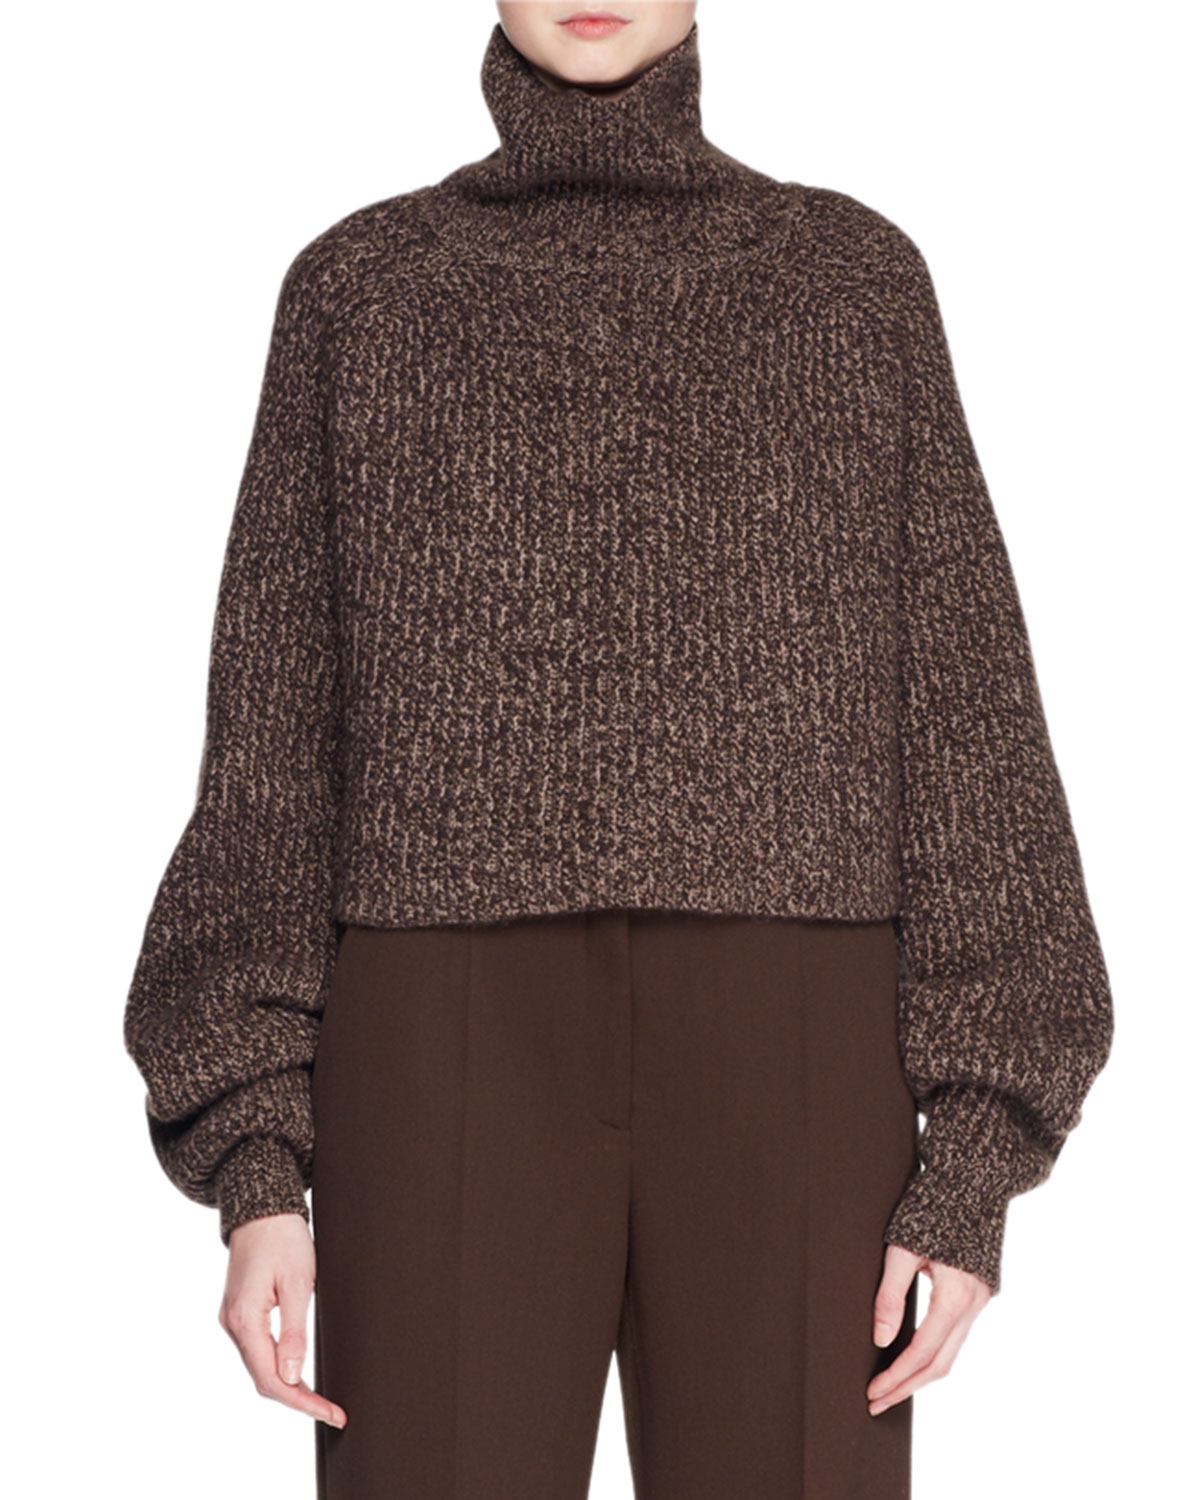 Dickie Turtleneck Long Sleeve Melange Cashmere Pullover Sweater by The Row